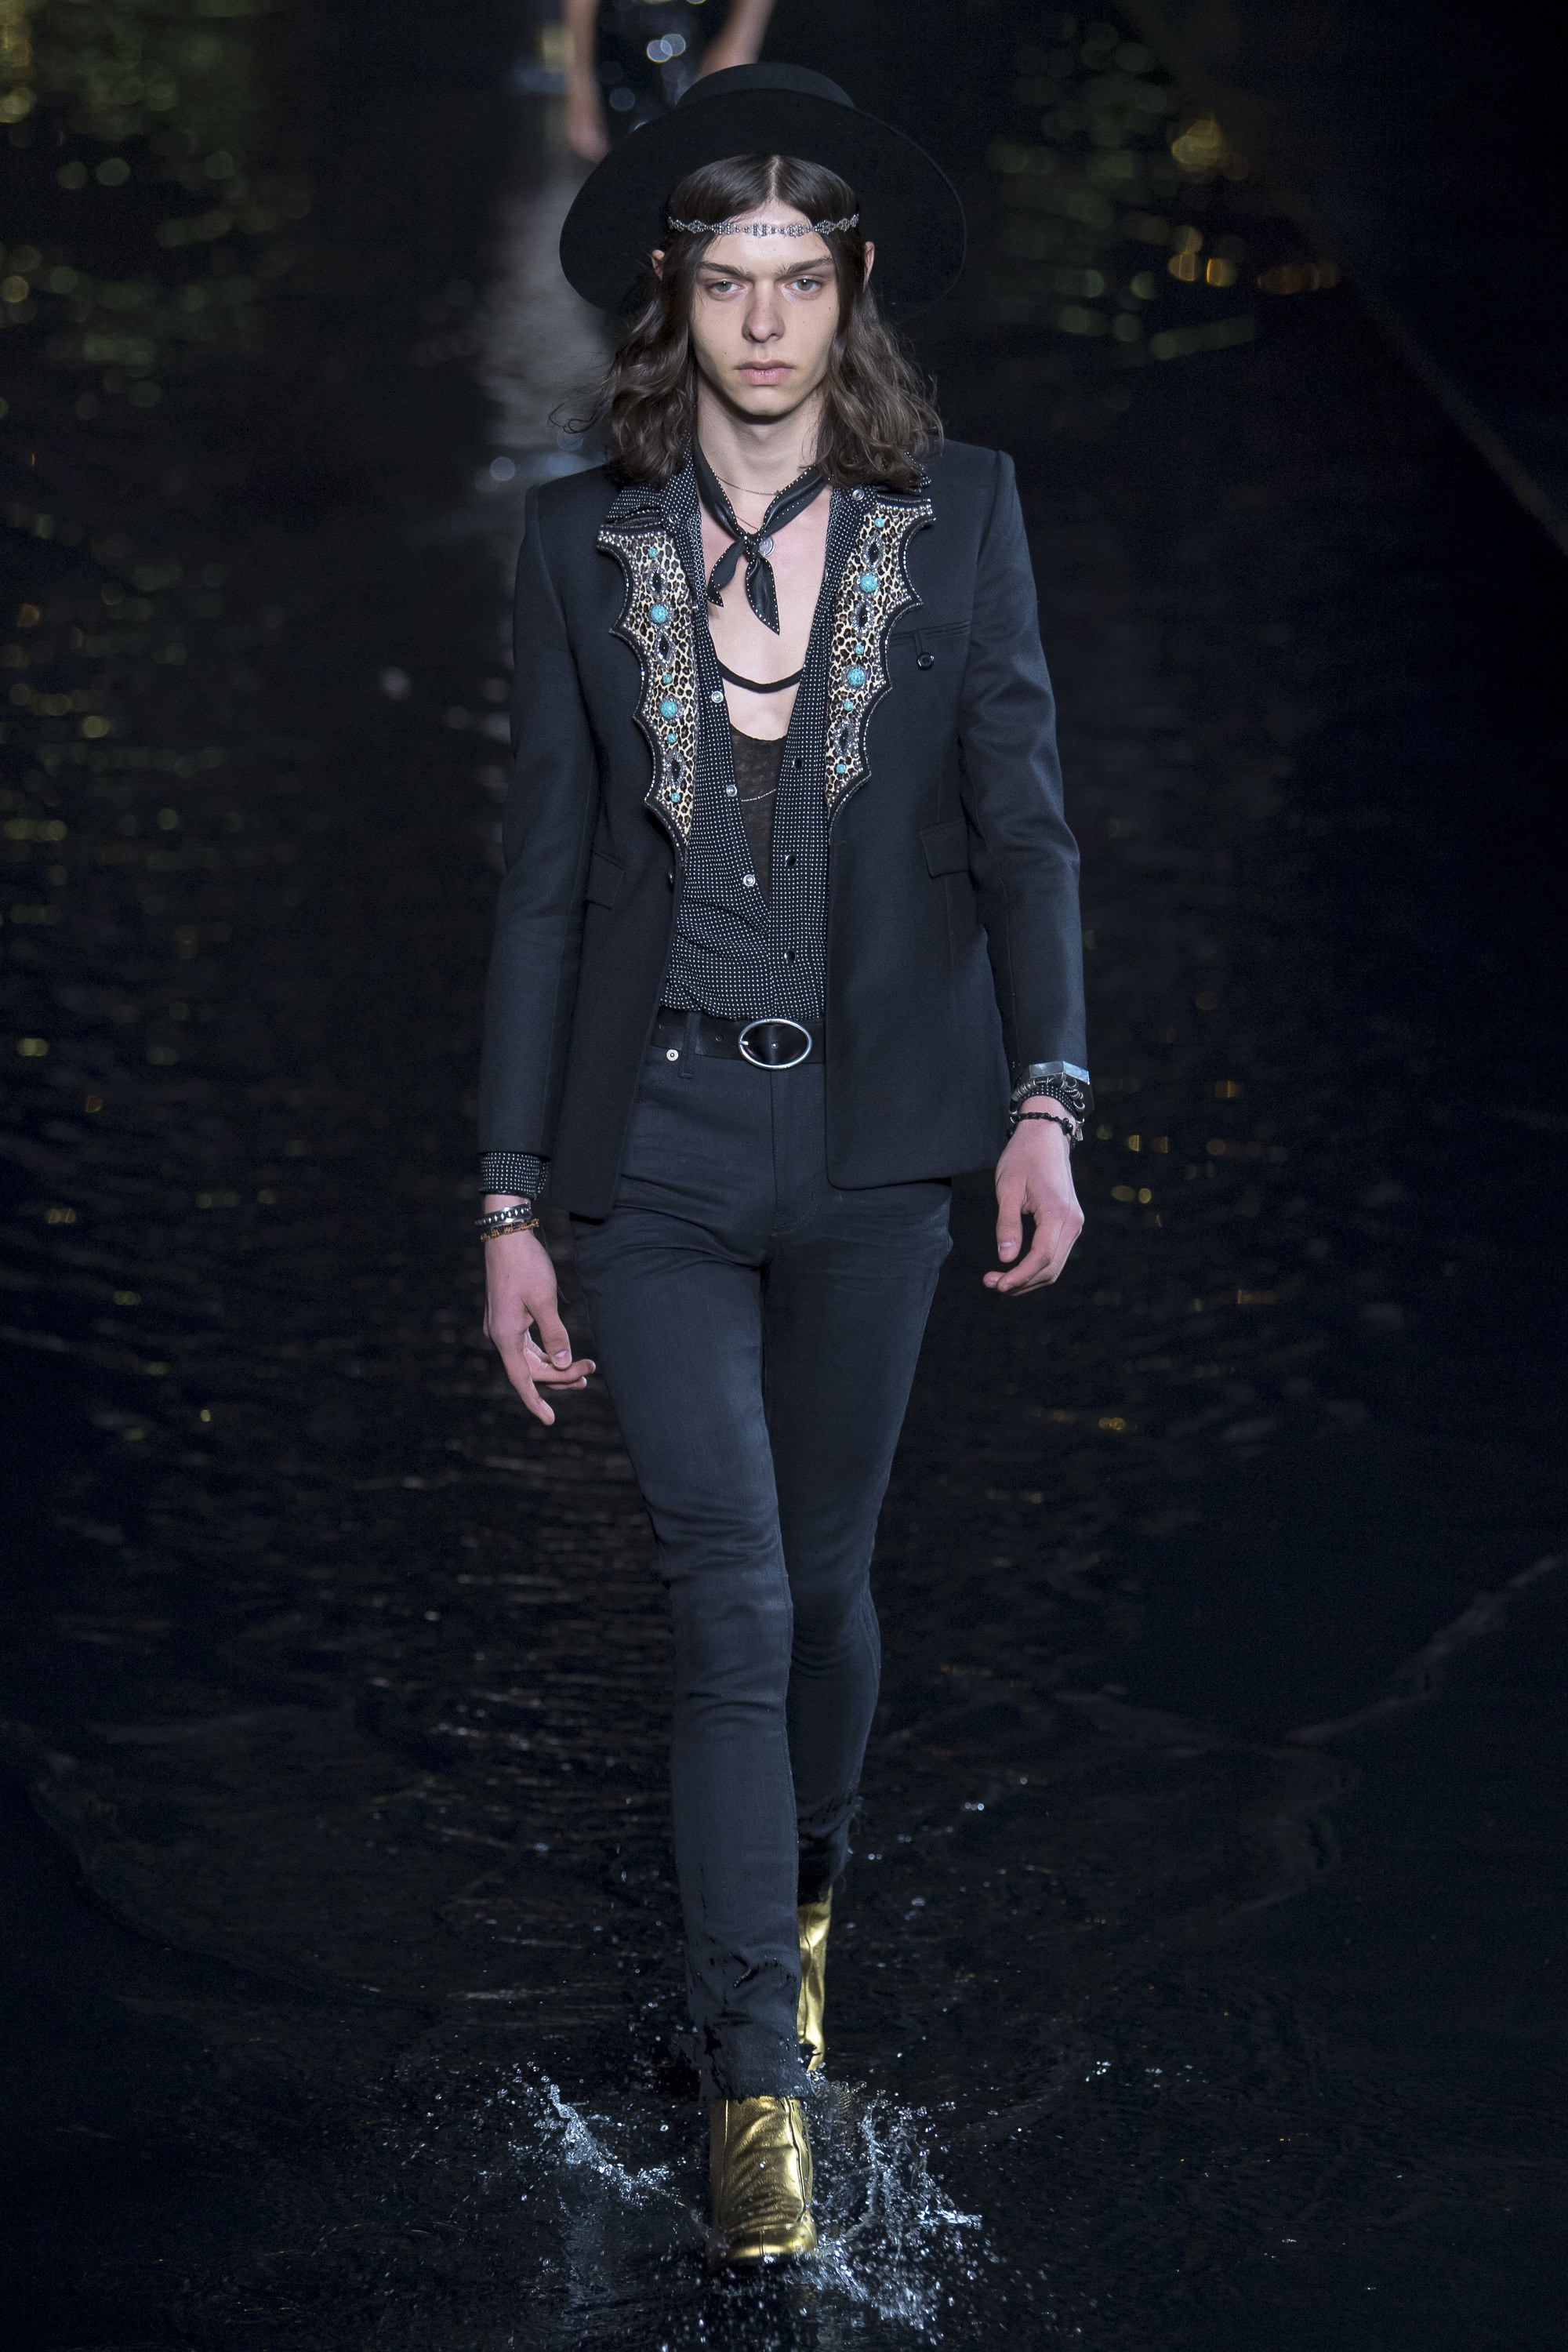 Saint Laurent Ready-to-Wear Spring/Summer 2019